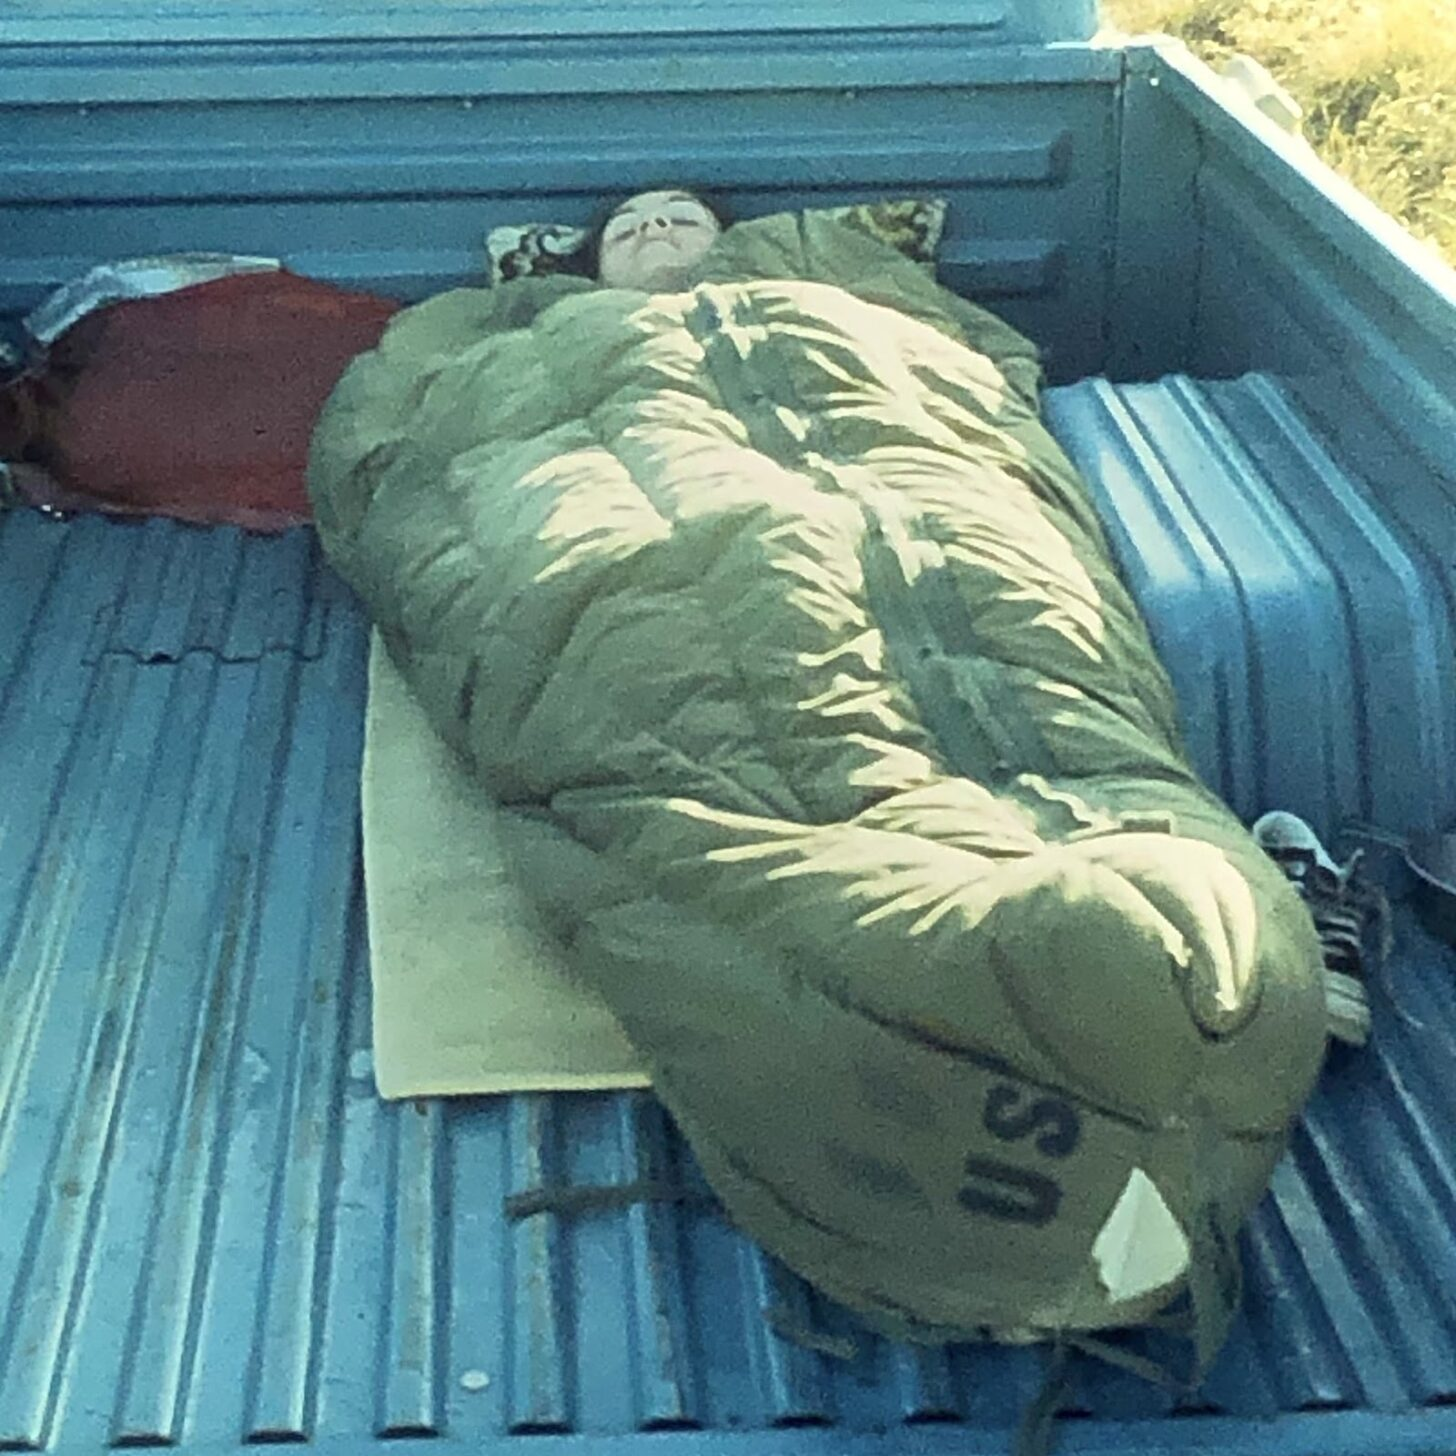 a person sleeping in an old army surplus sleeping bag in the back of a truck.